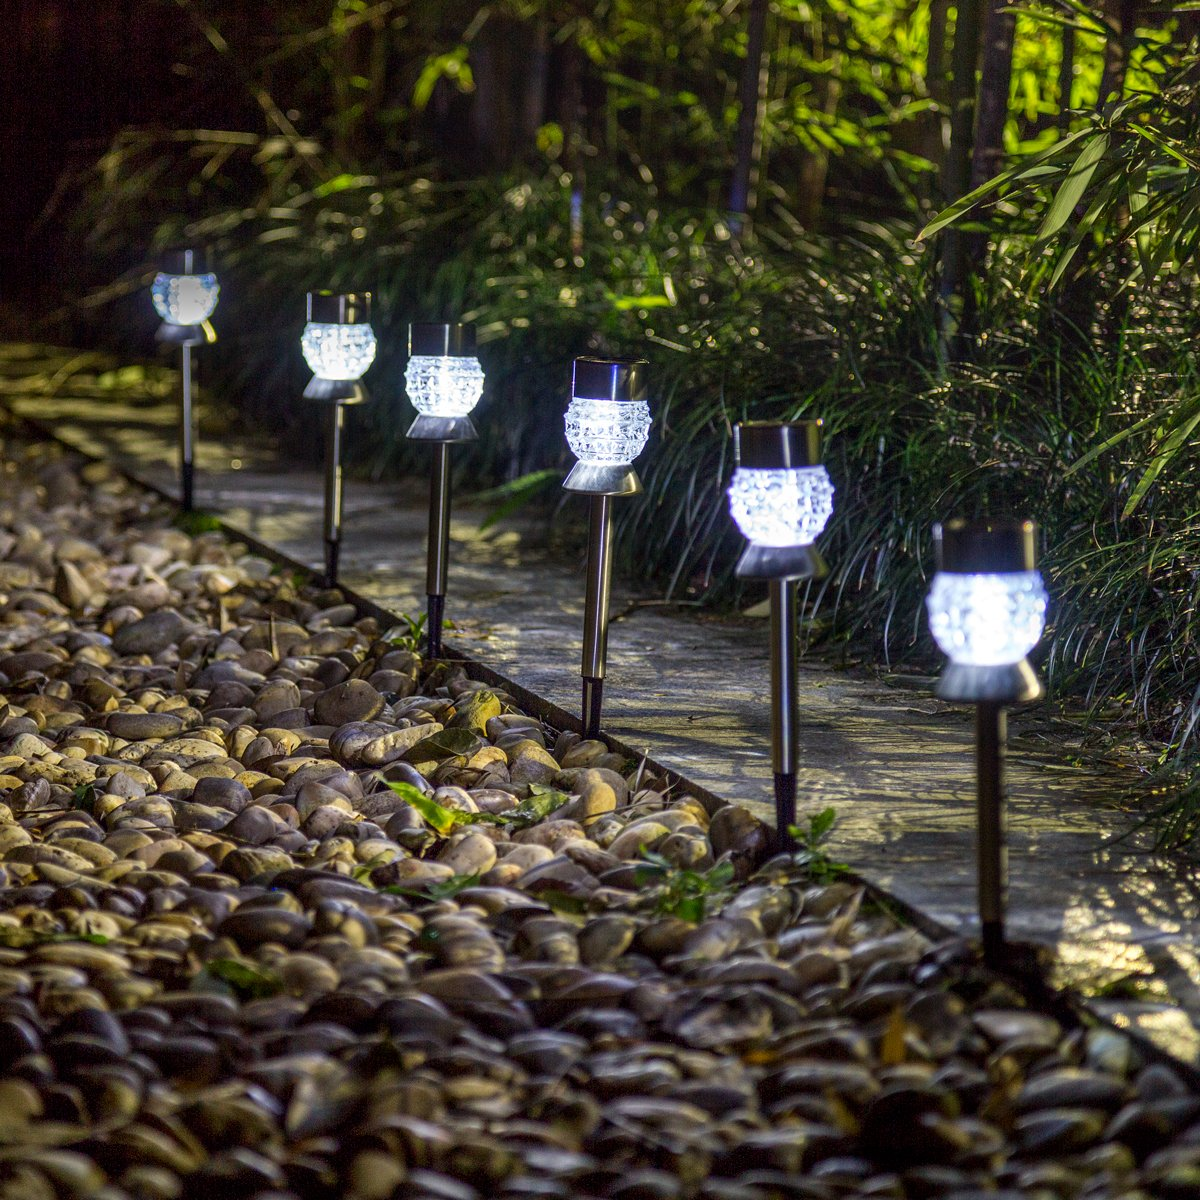 GIGALUMI Solar Lights Stainless Steel-6 Pack Auto On/Off